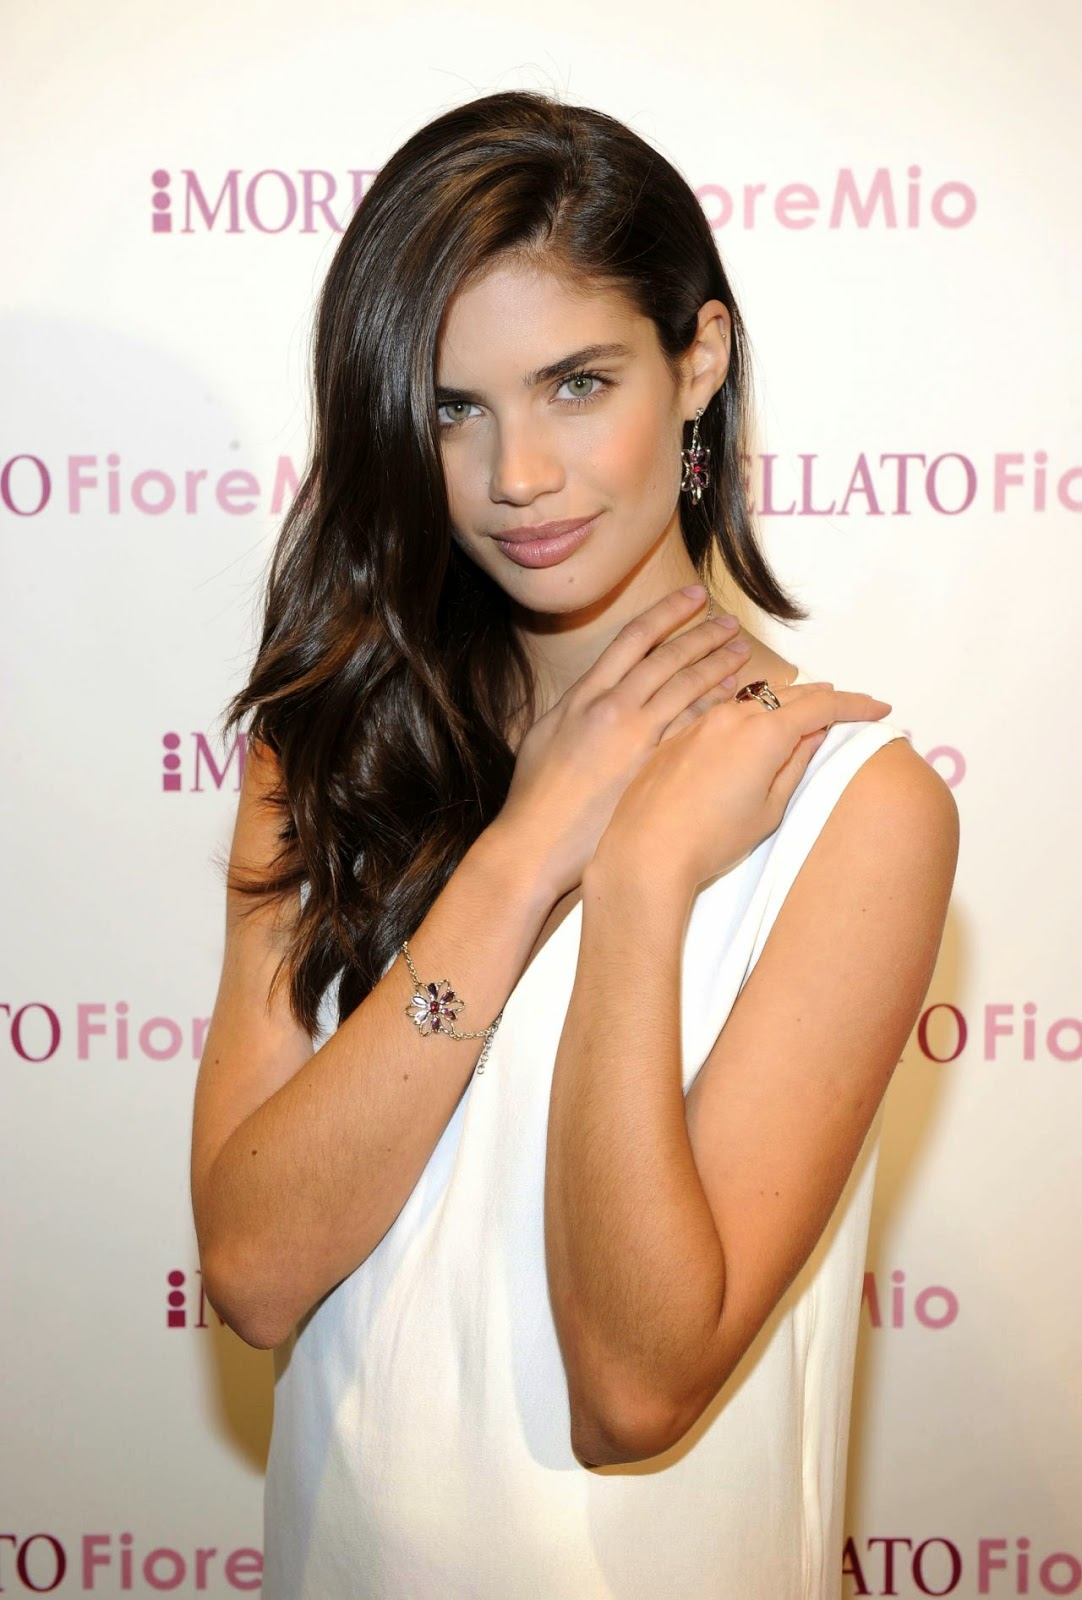 Hot Photos of Sara Sampaio.